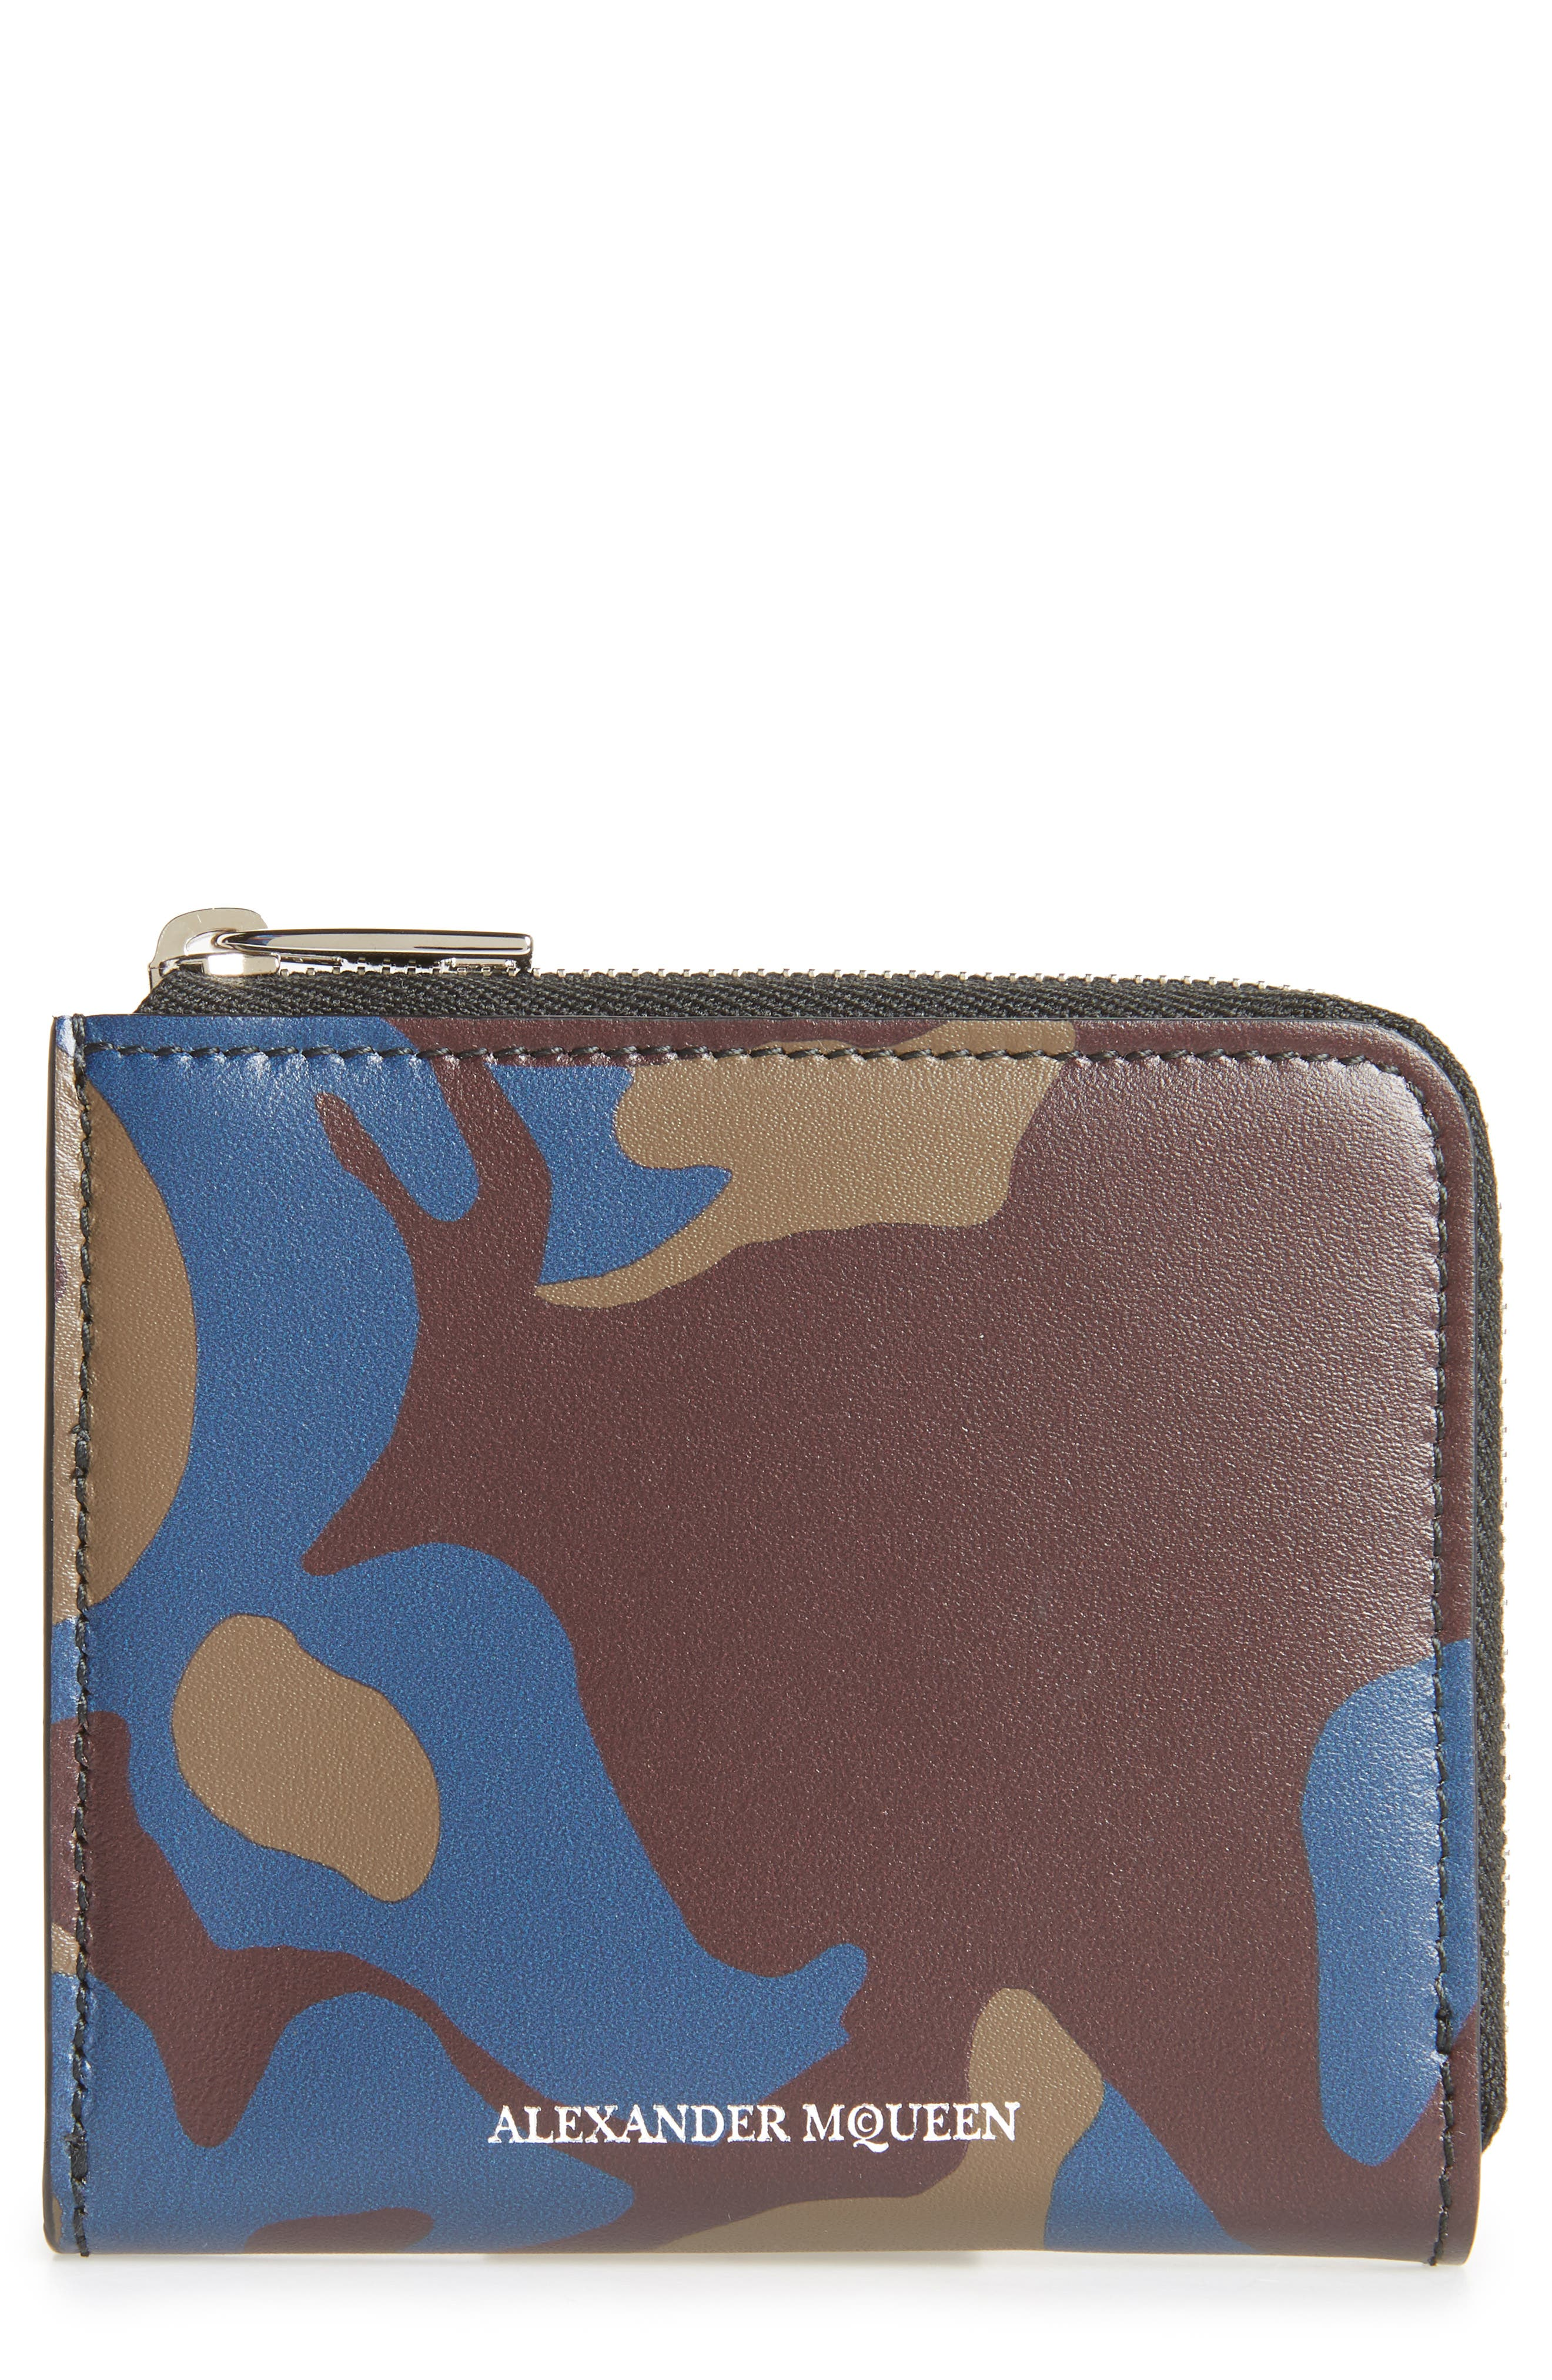 Leather Zip Coin Purse,                             Main thumbnail 1, color,                             MILITARY